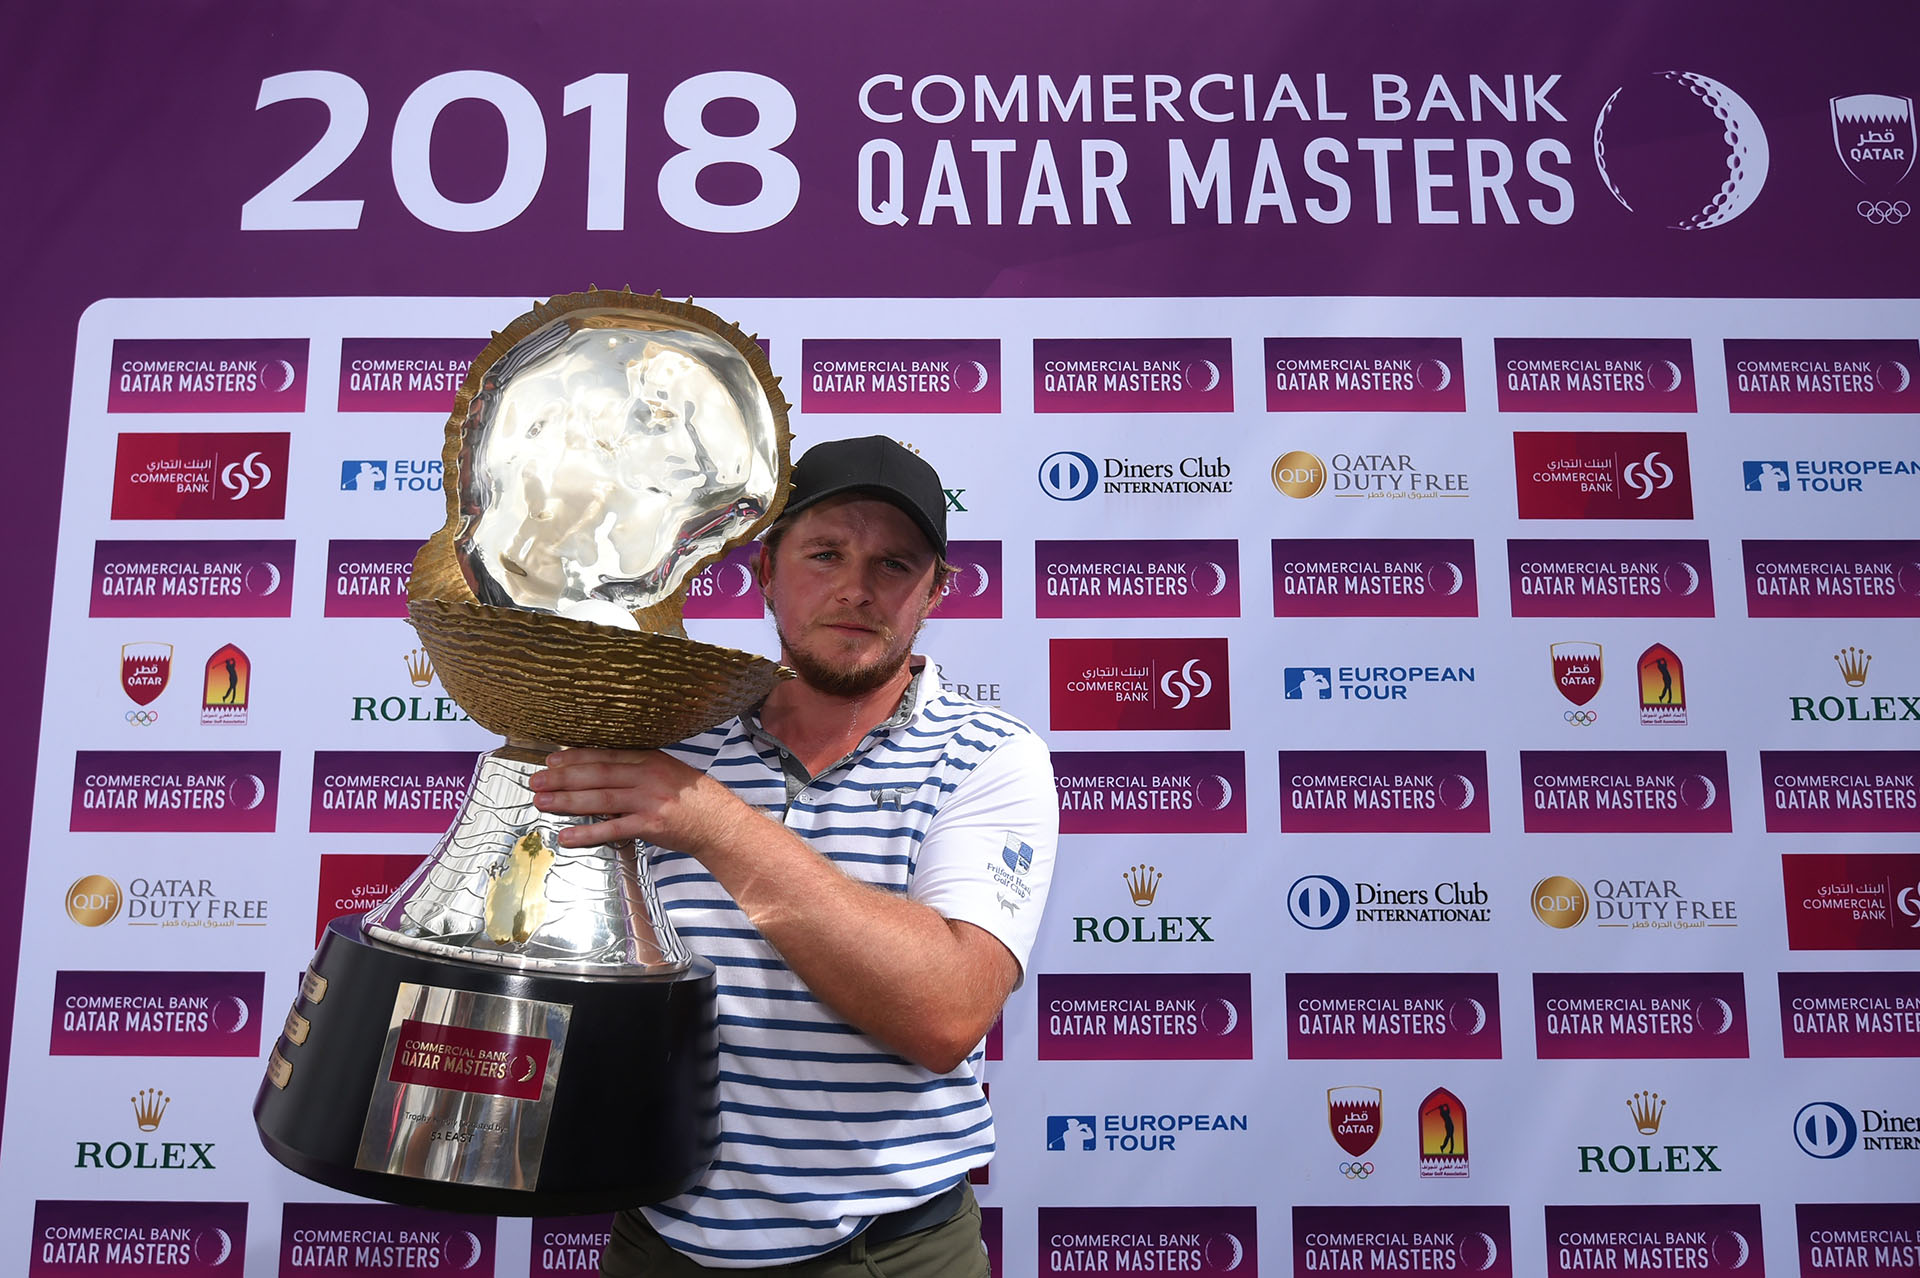 Eddie Pepperell wins maiden European Tour title